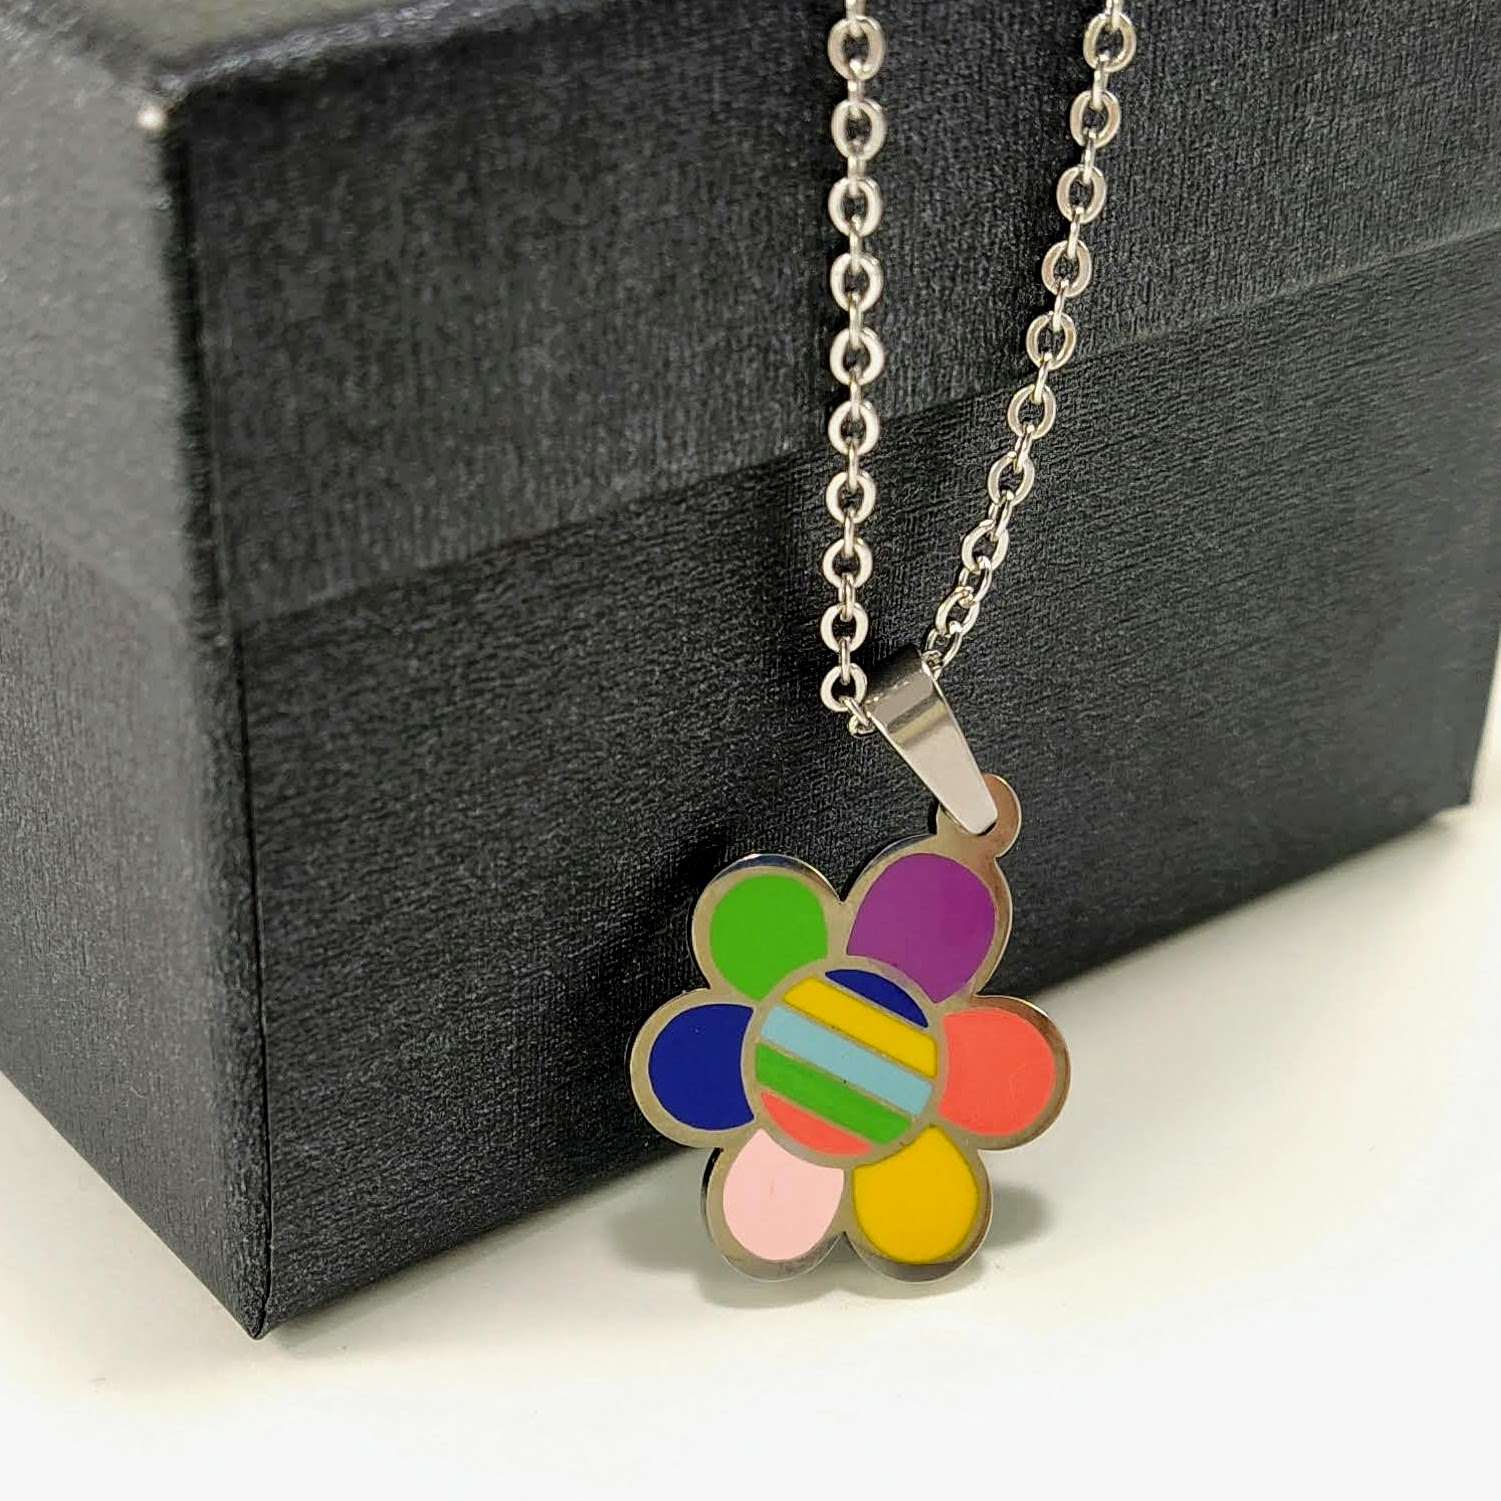 Pendant Flower's for women lad fashion trend Chain 2020 birthday friend gift fashion trendy image